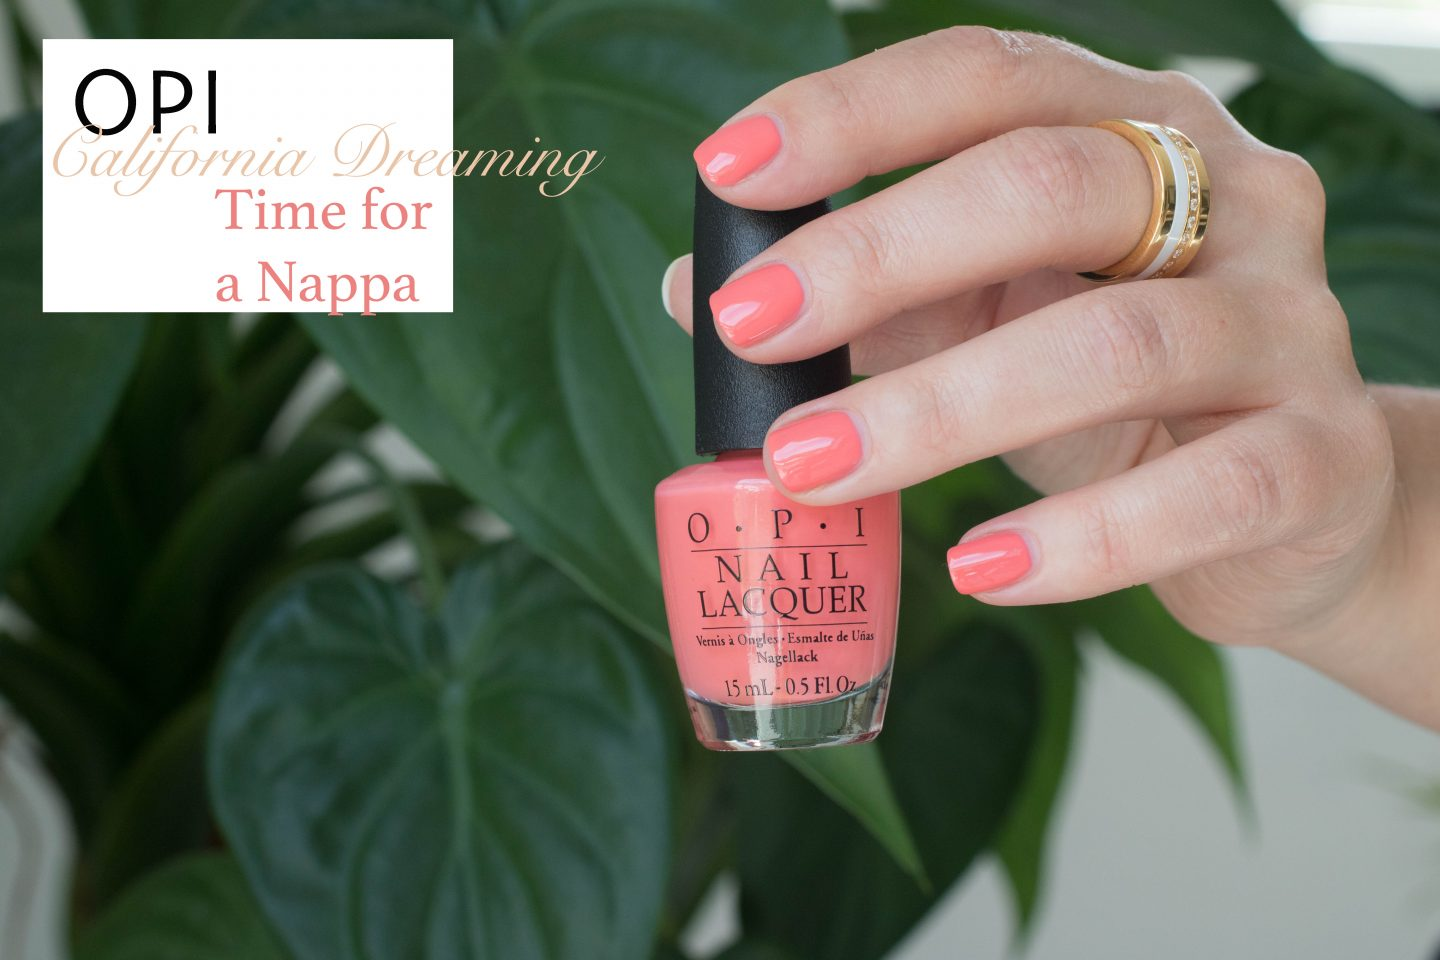 OPI California Dreaming Time for a Nappa